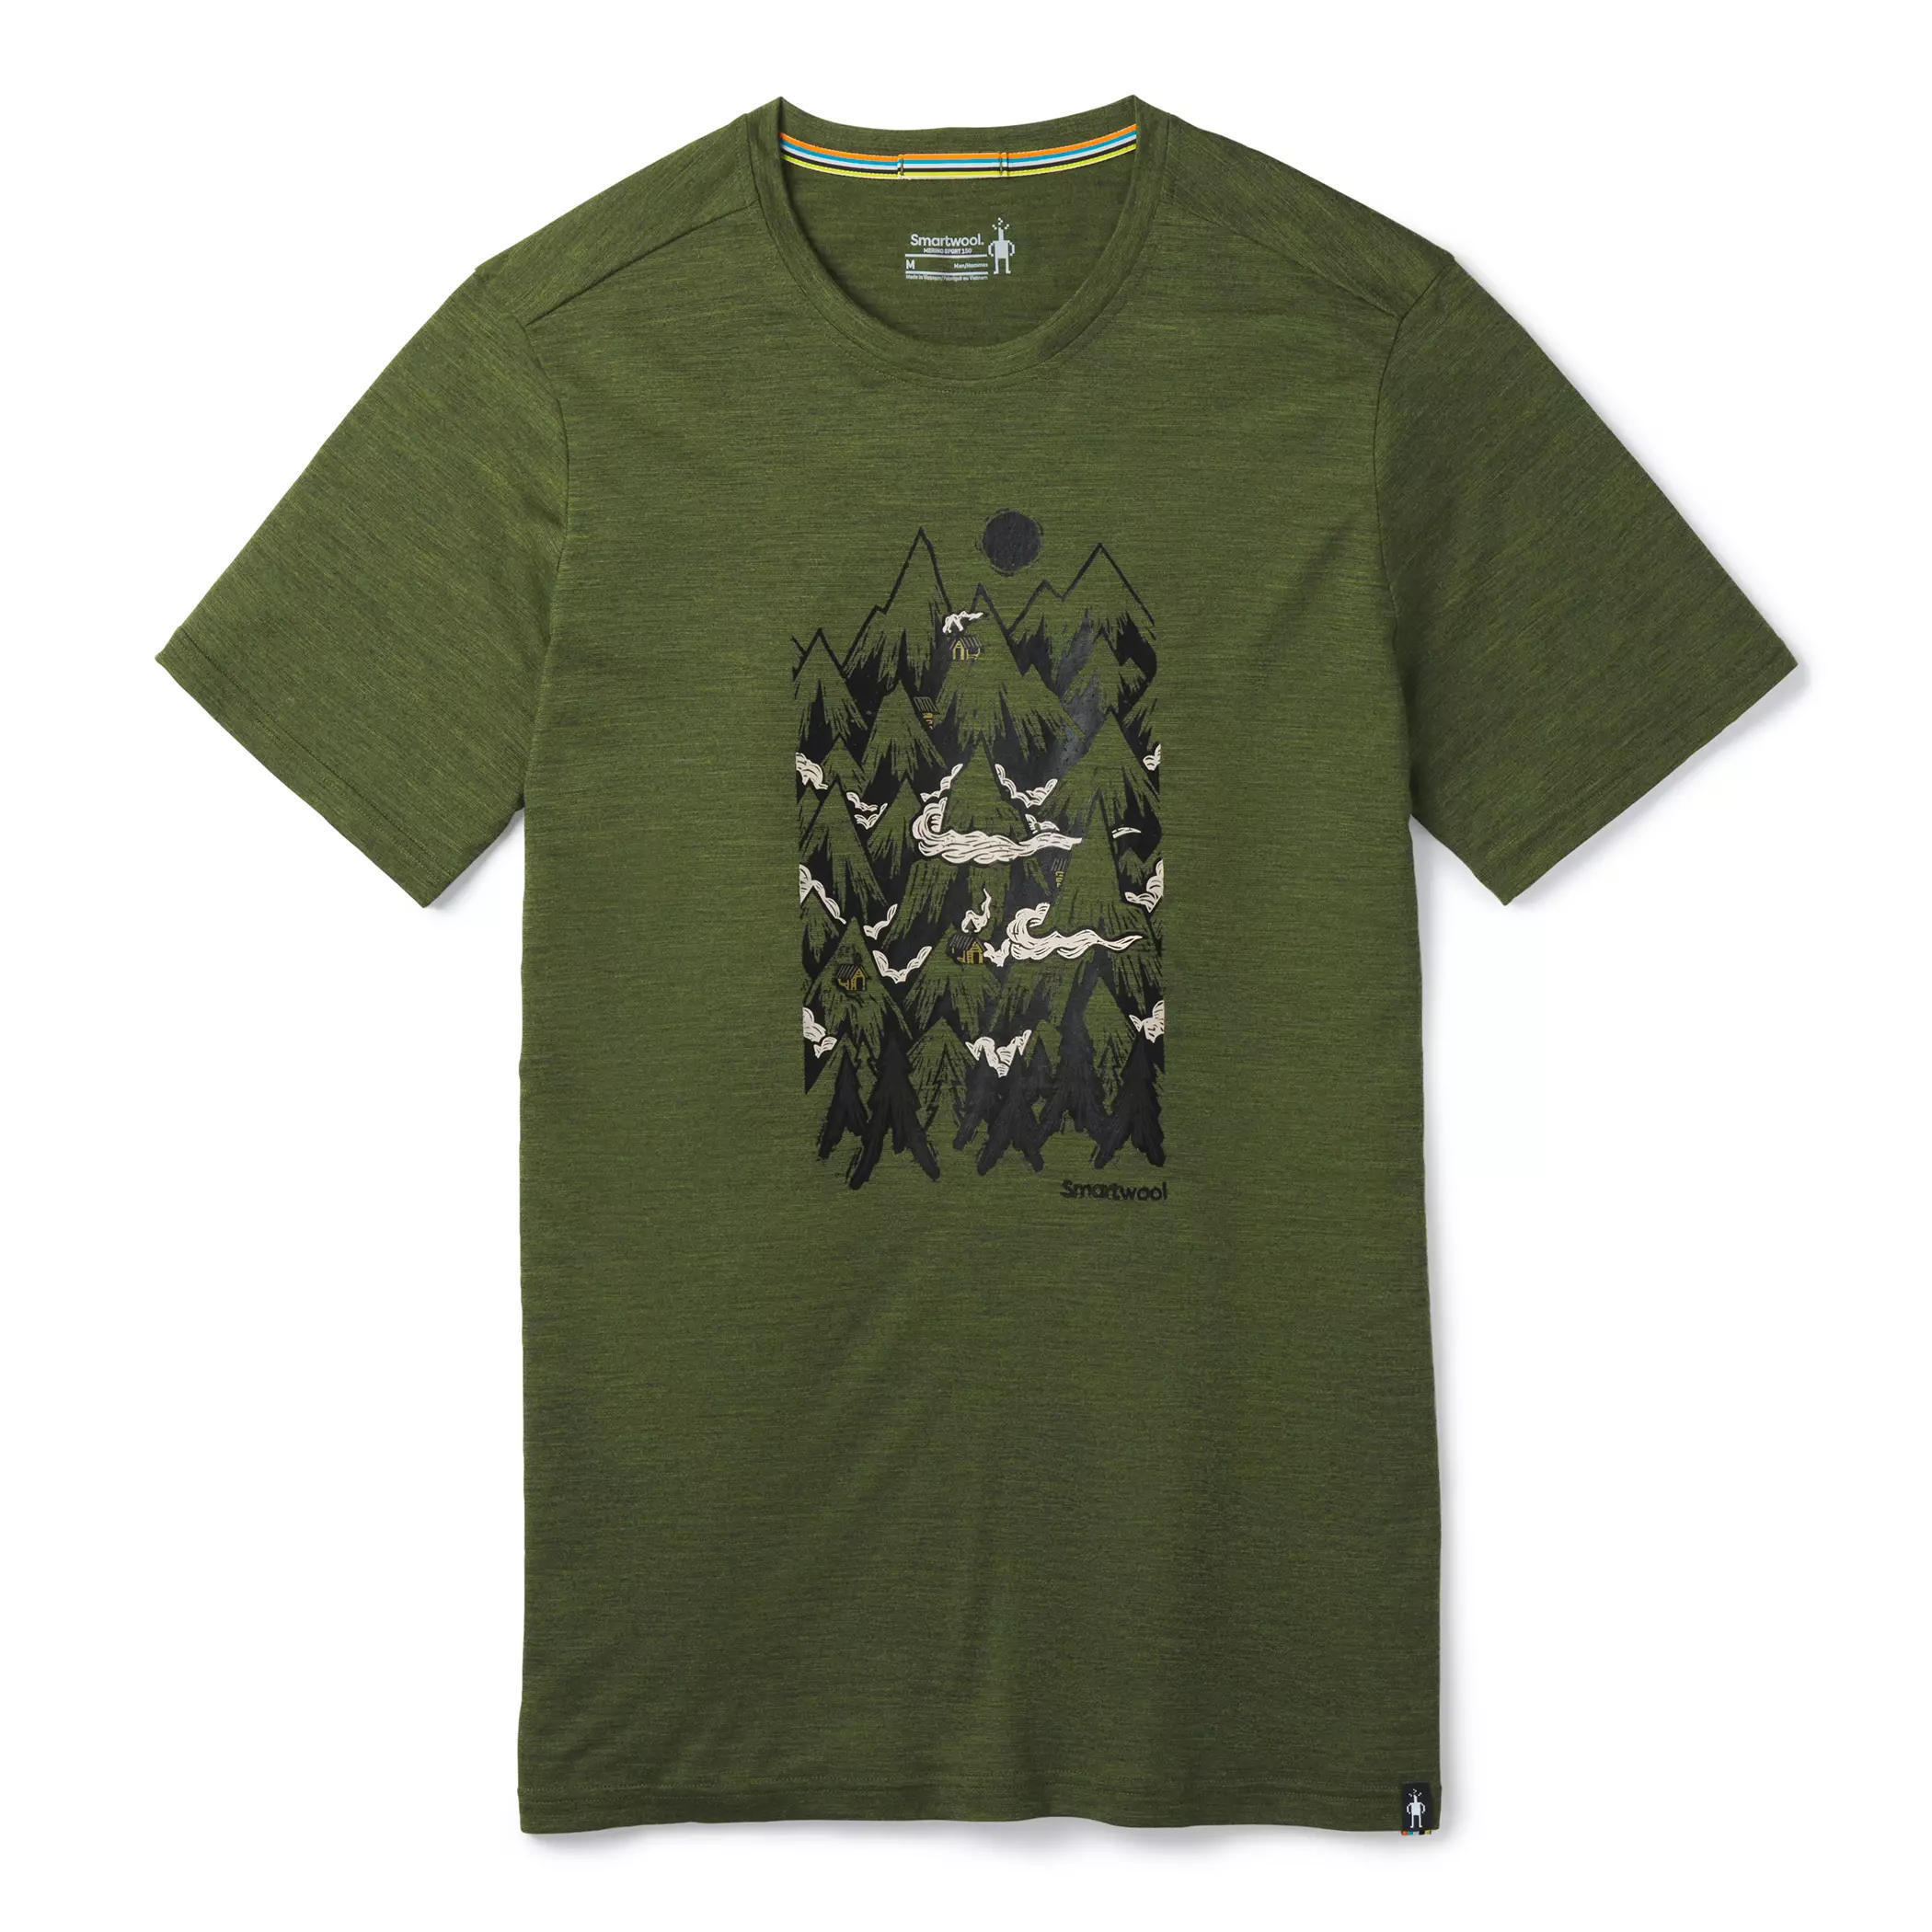 Merino Sport 150 Mountain Ventures Tee - Men's